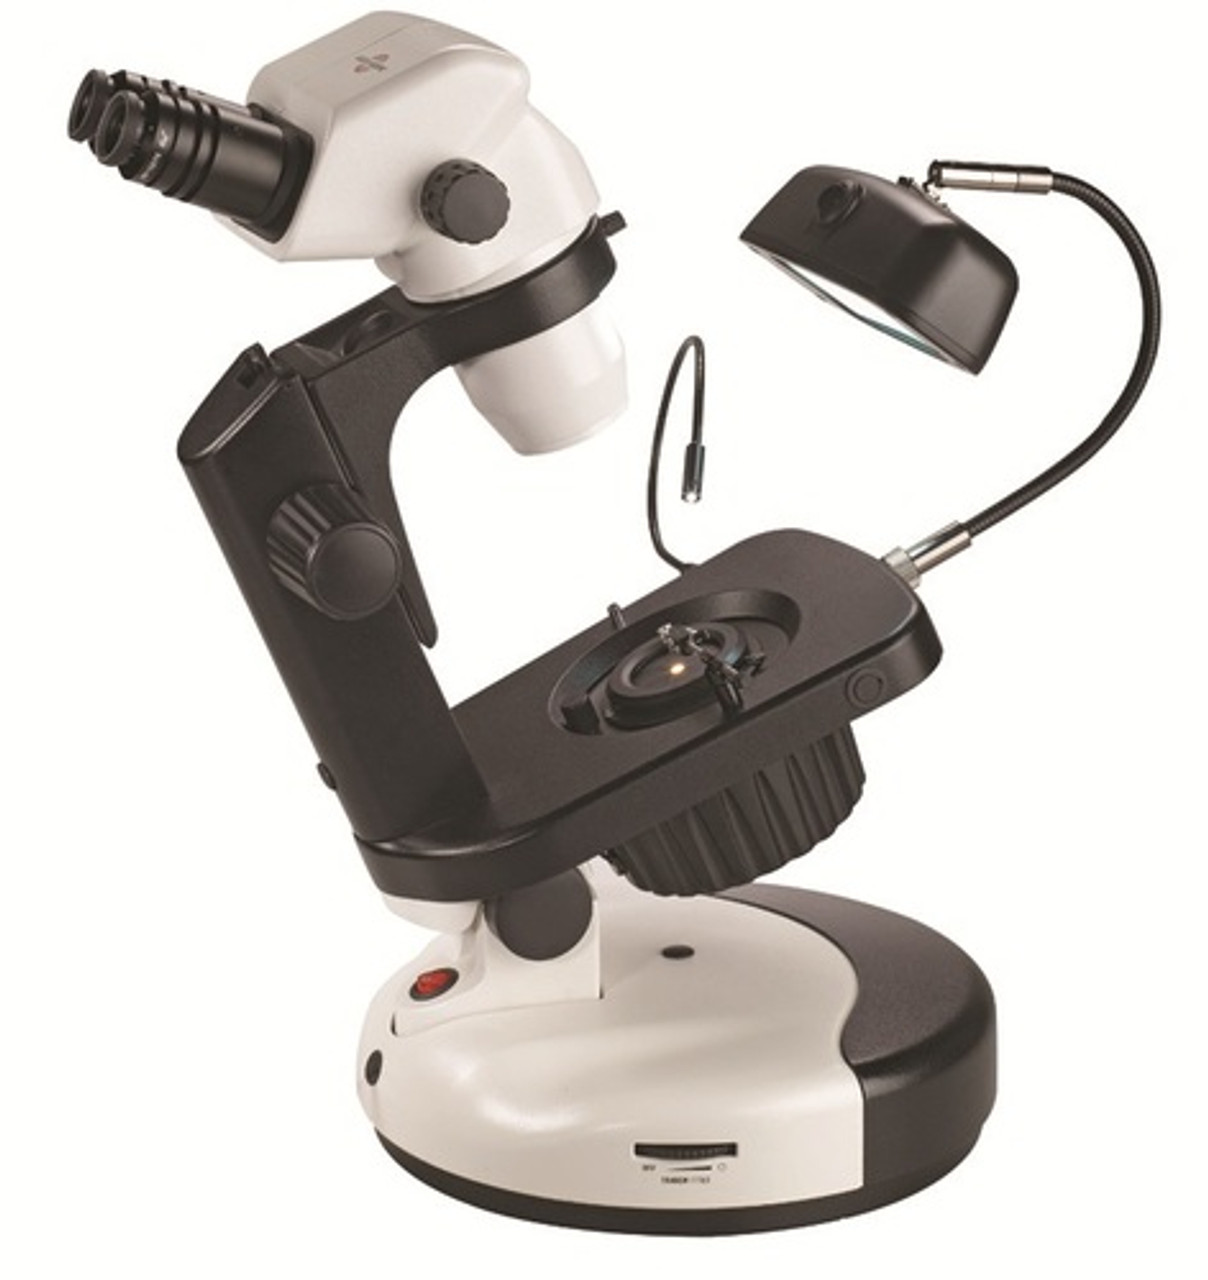 Accu-Scope 3075 Binocular Zoom Stereo Microscope on Gem Stand